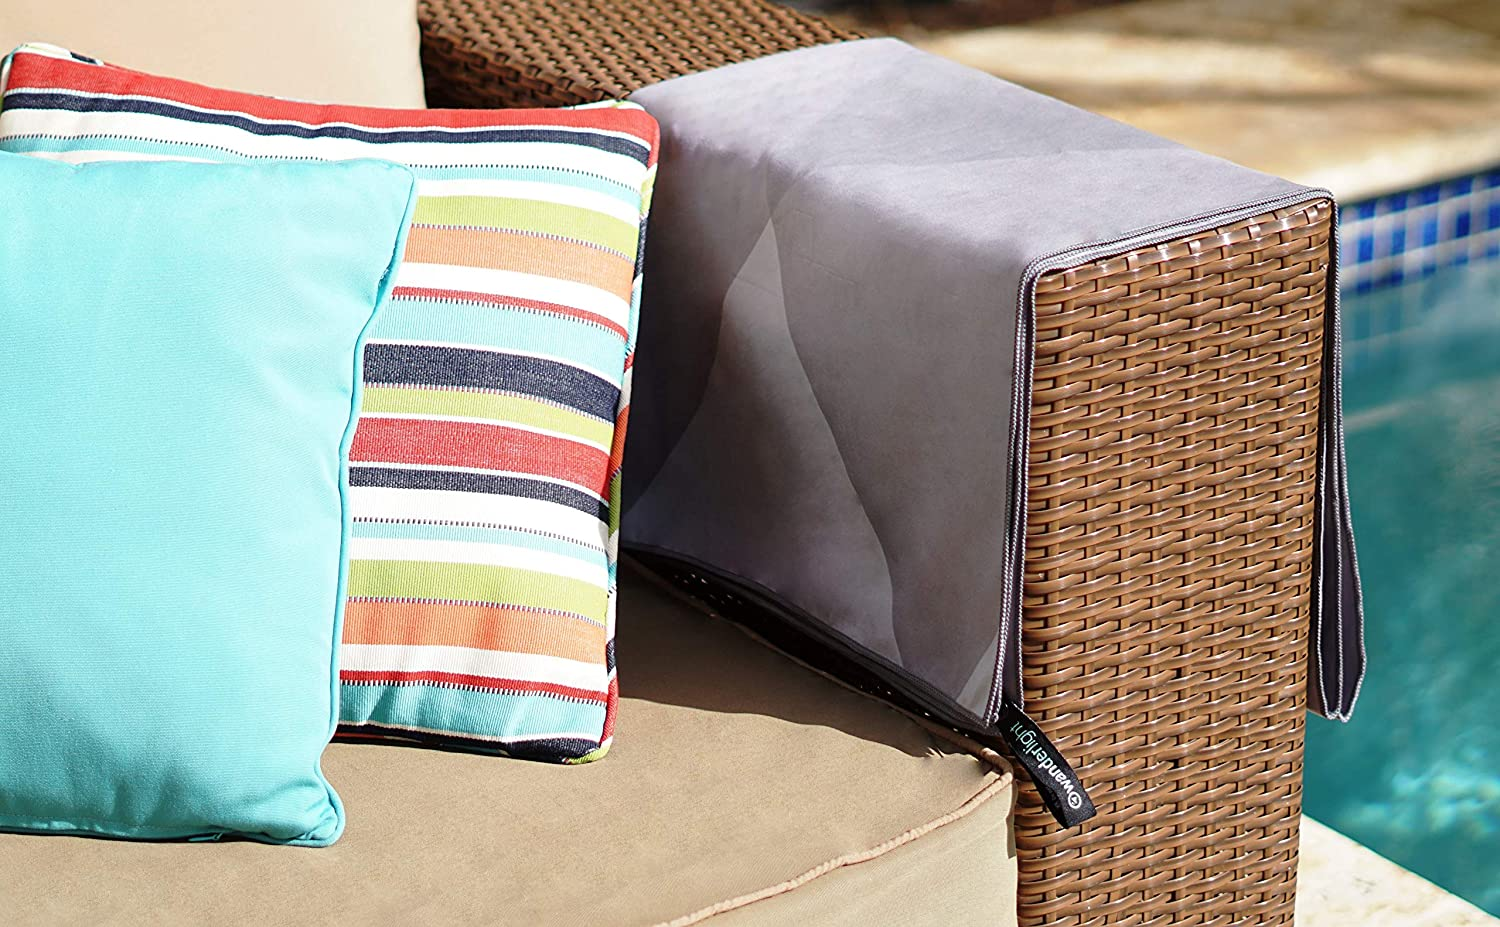 Perfect for Camping Gym Compact Water Sports Quick-Dry Beach /& Yoga Microfiber Towel Turquoise Chevron, Standard Travel Super Absorbent Beach Yoga Sand-Free